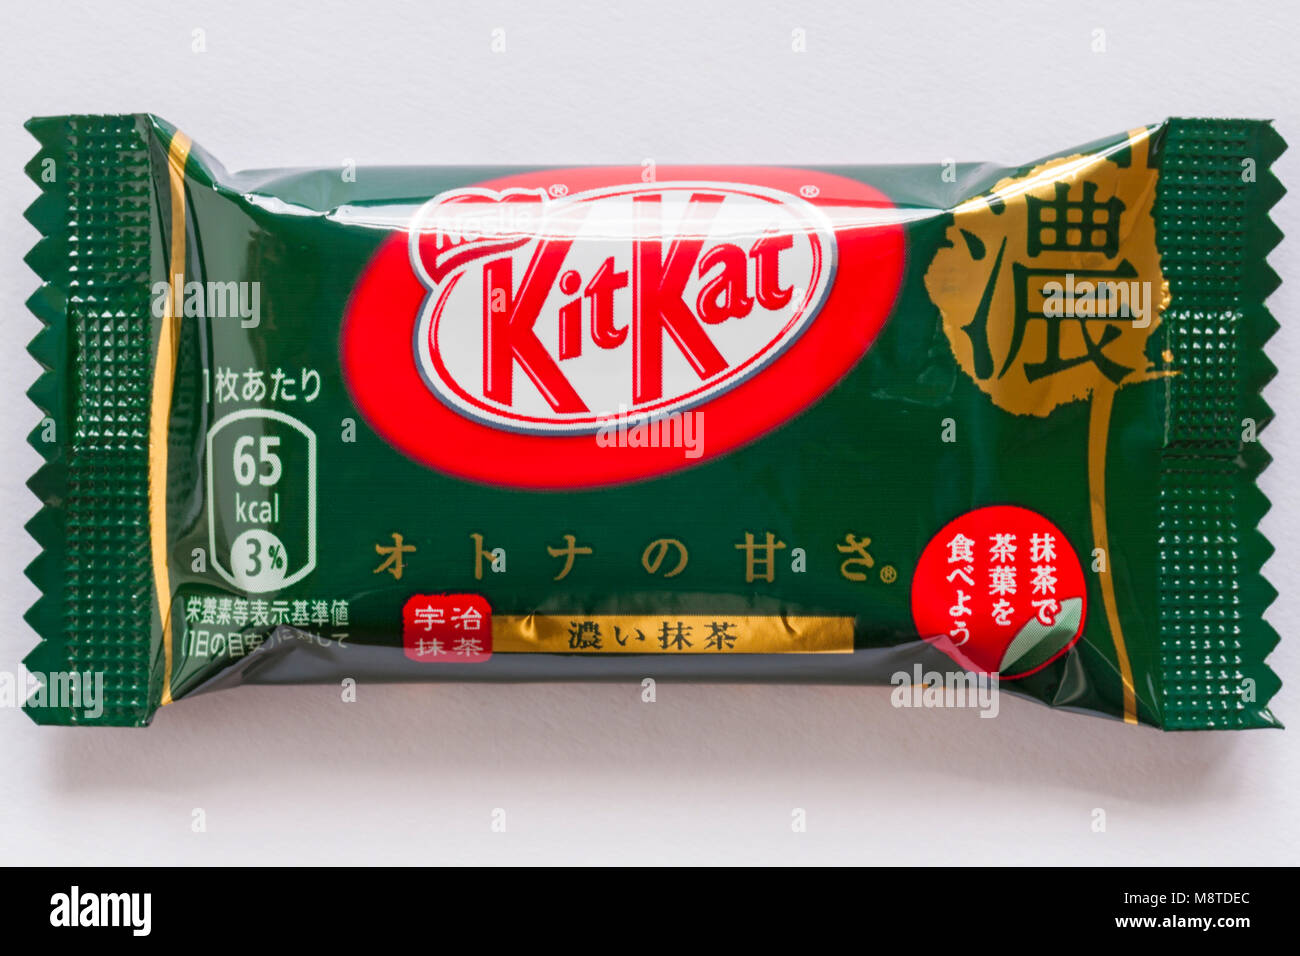 Matcha Green Tea Biscuits Stock Photos Kitkat Single Pack Of Mini Nestle Kit Kat Flavour Isolated On White Background